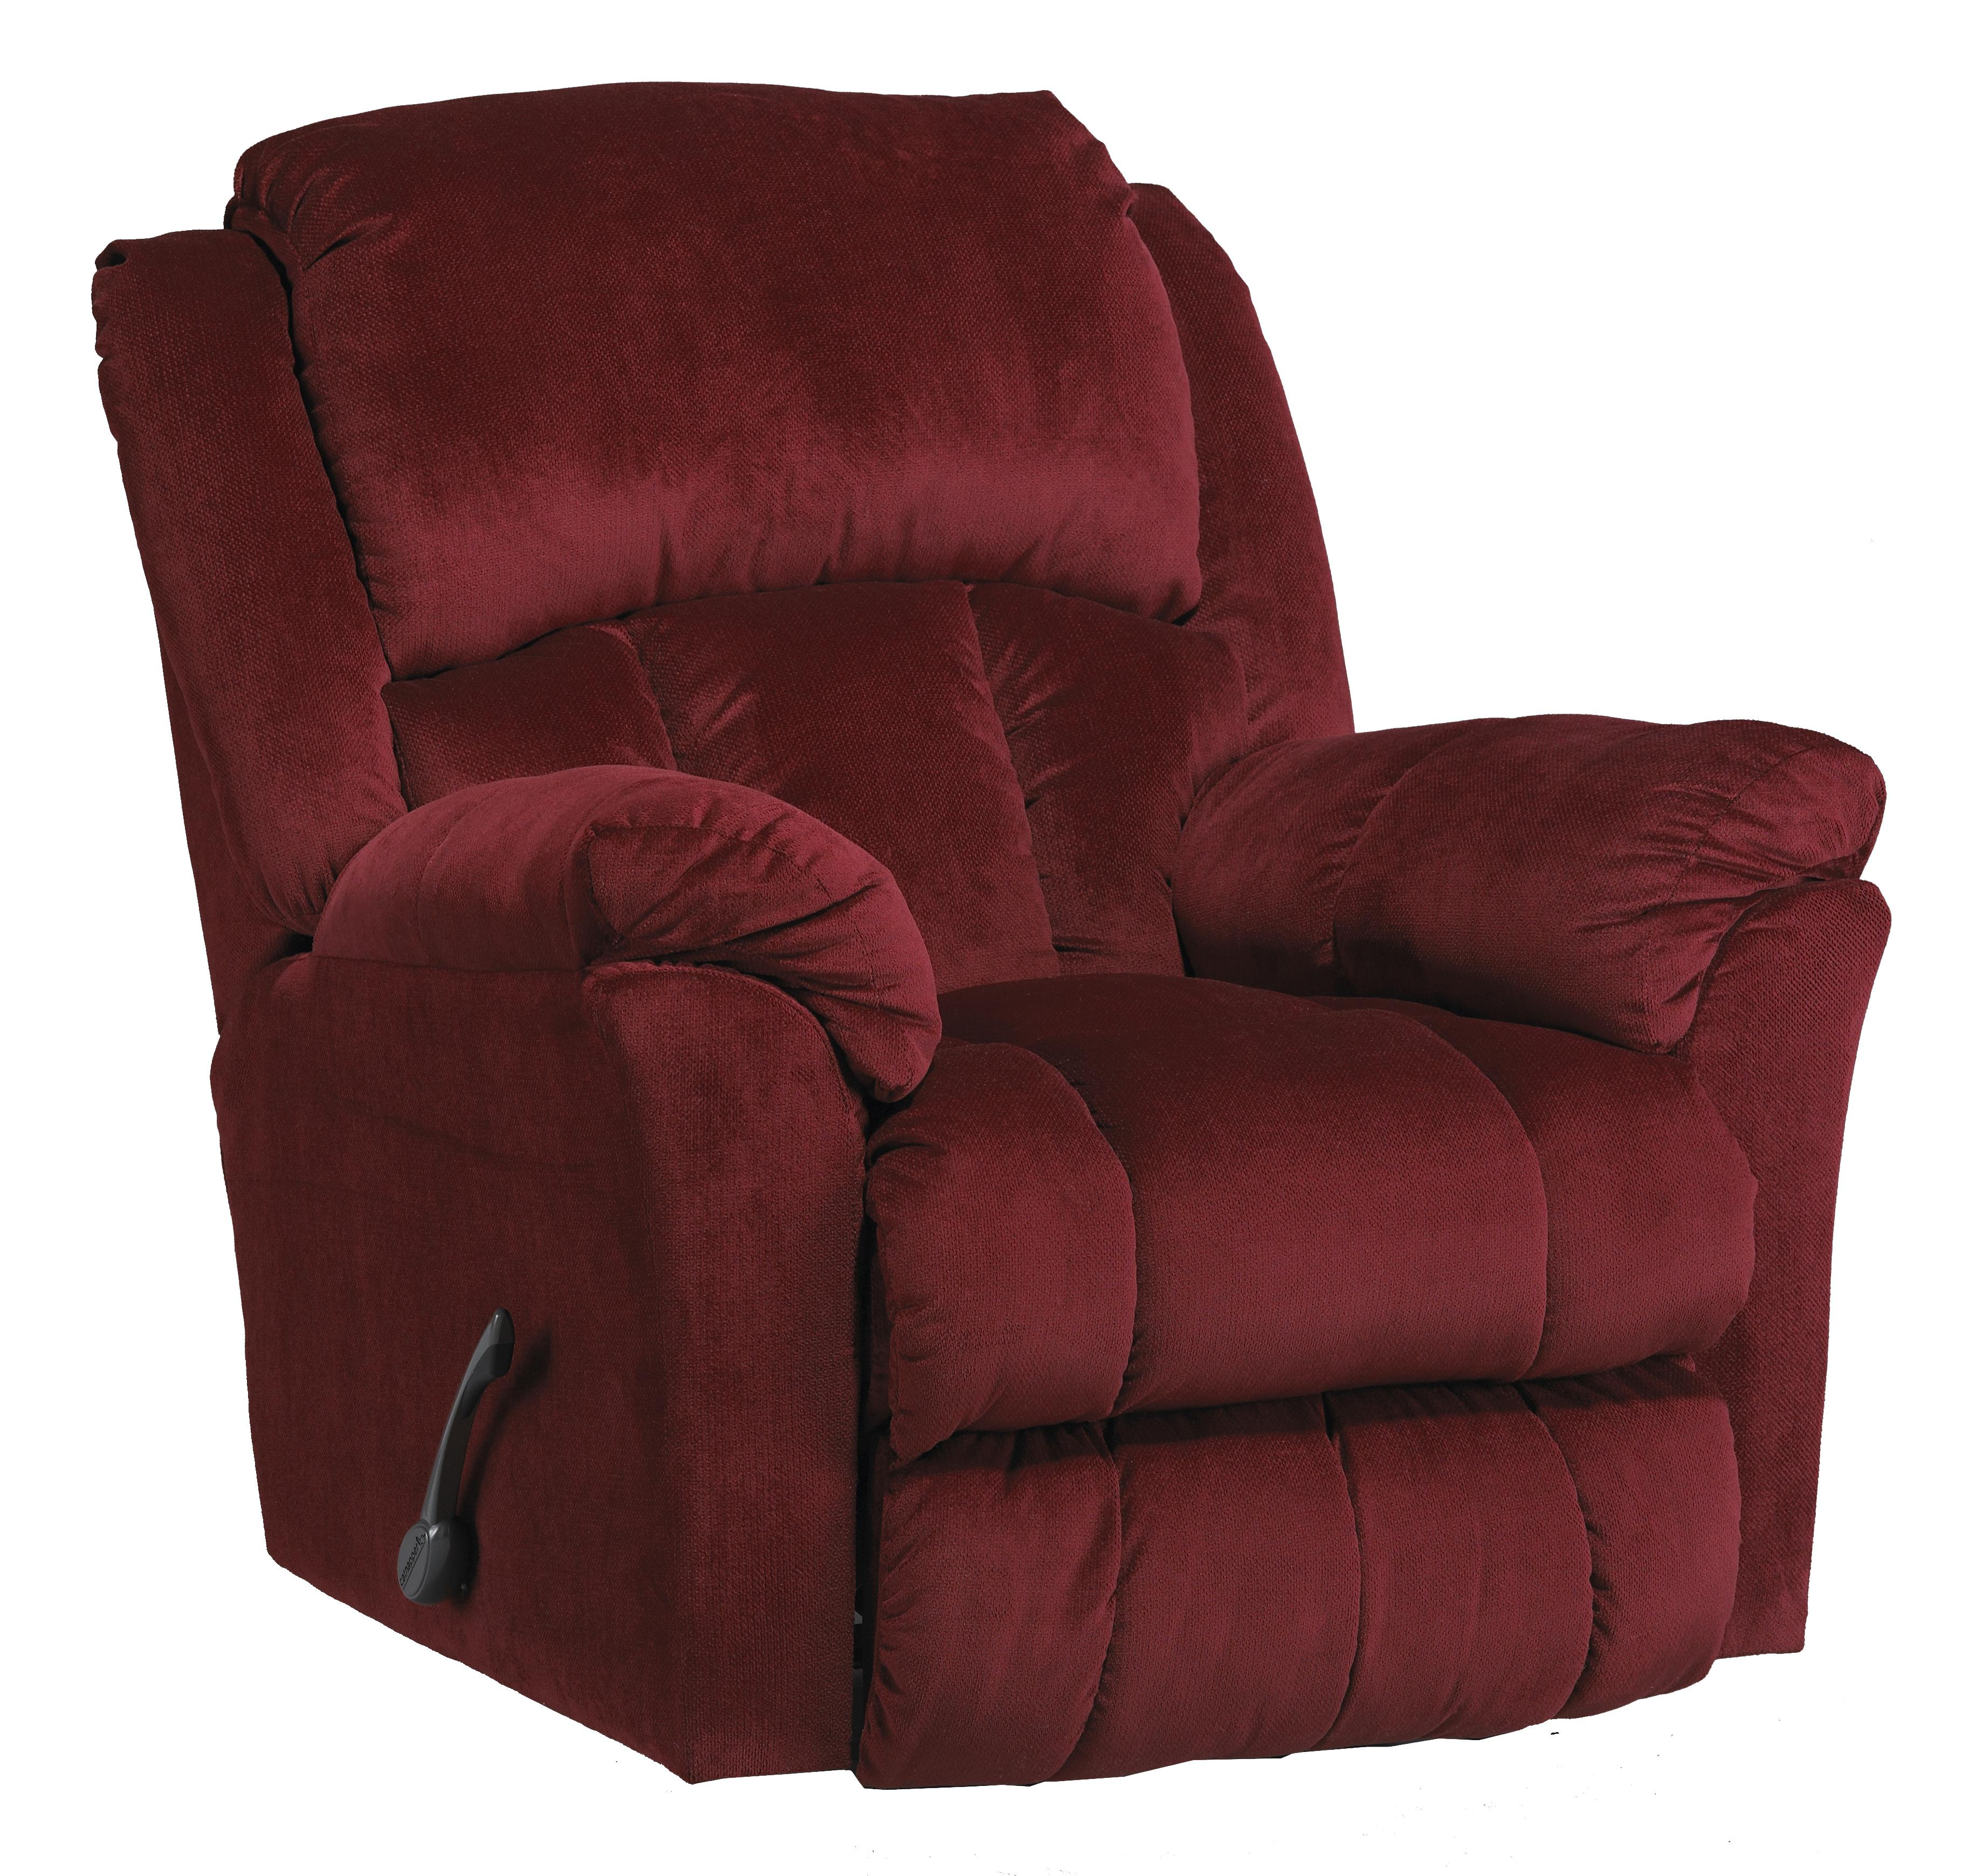 Catnapper Motion Chairs and Recliners Gibson Swivel Glider Recliner - Item Number: 4516-5-1831-34